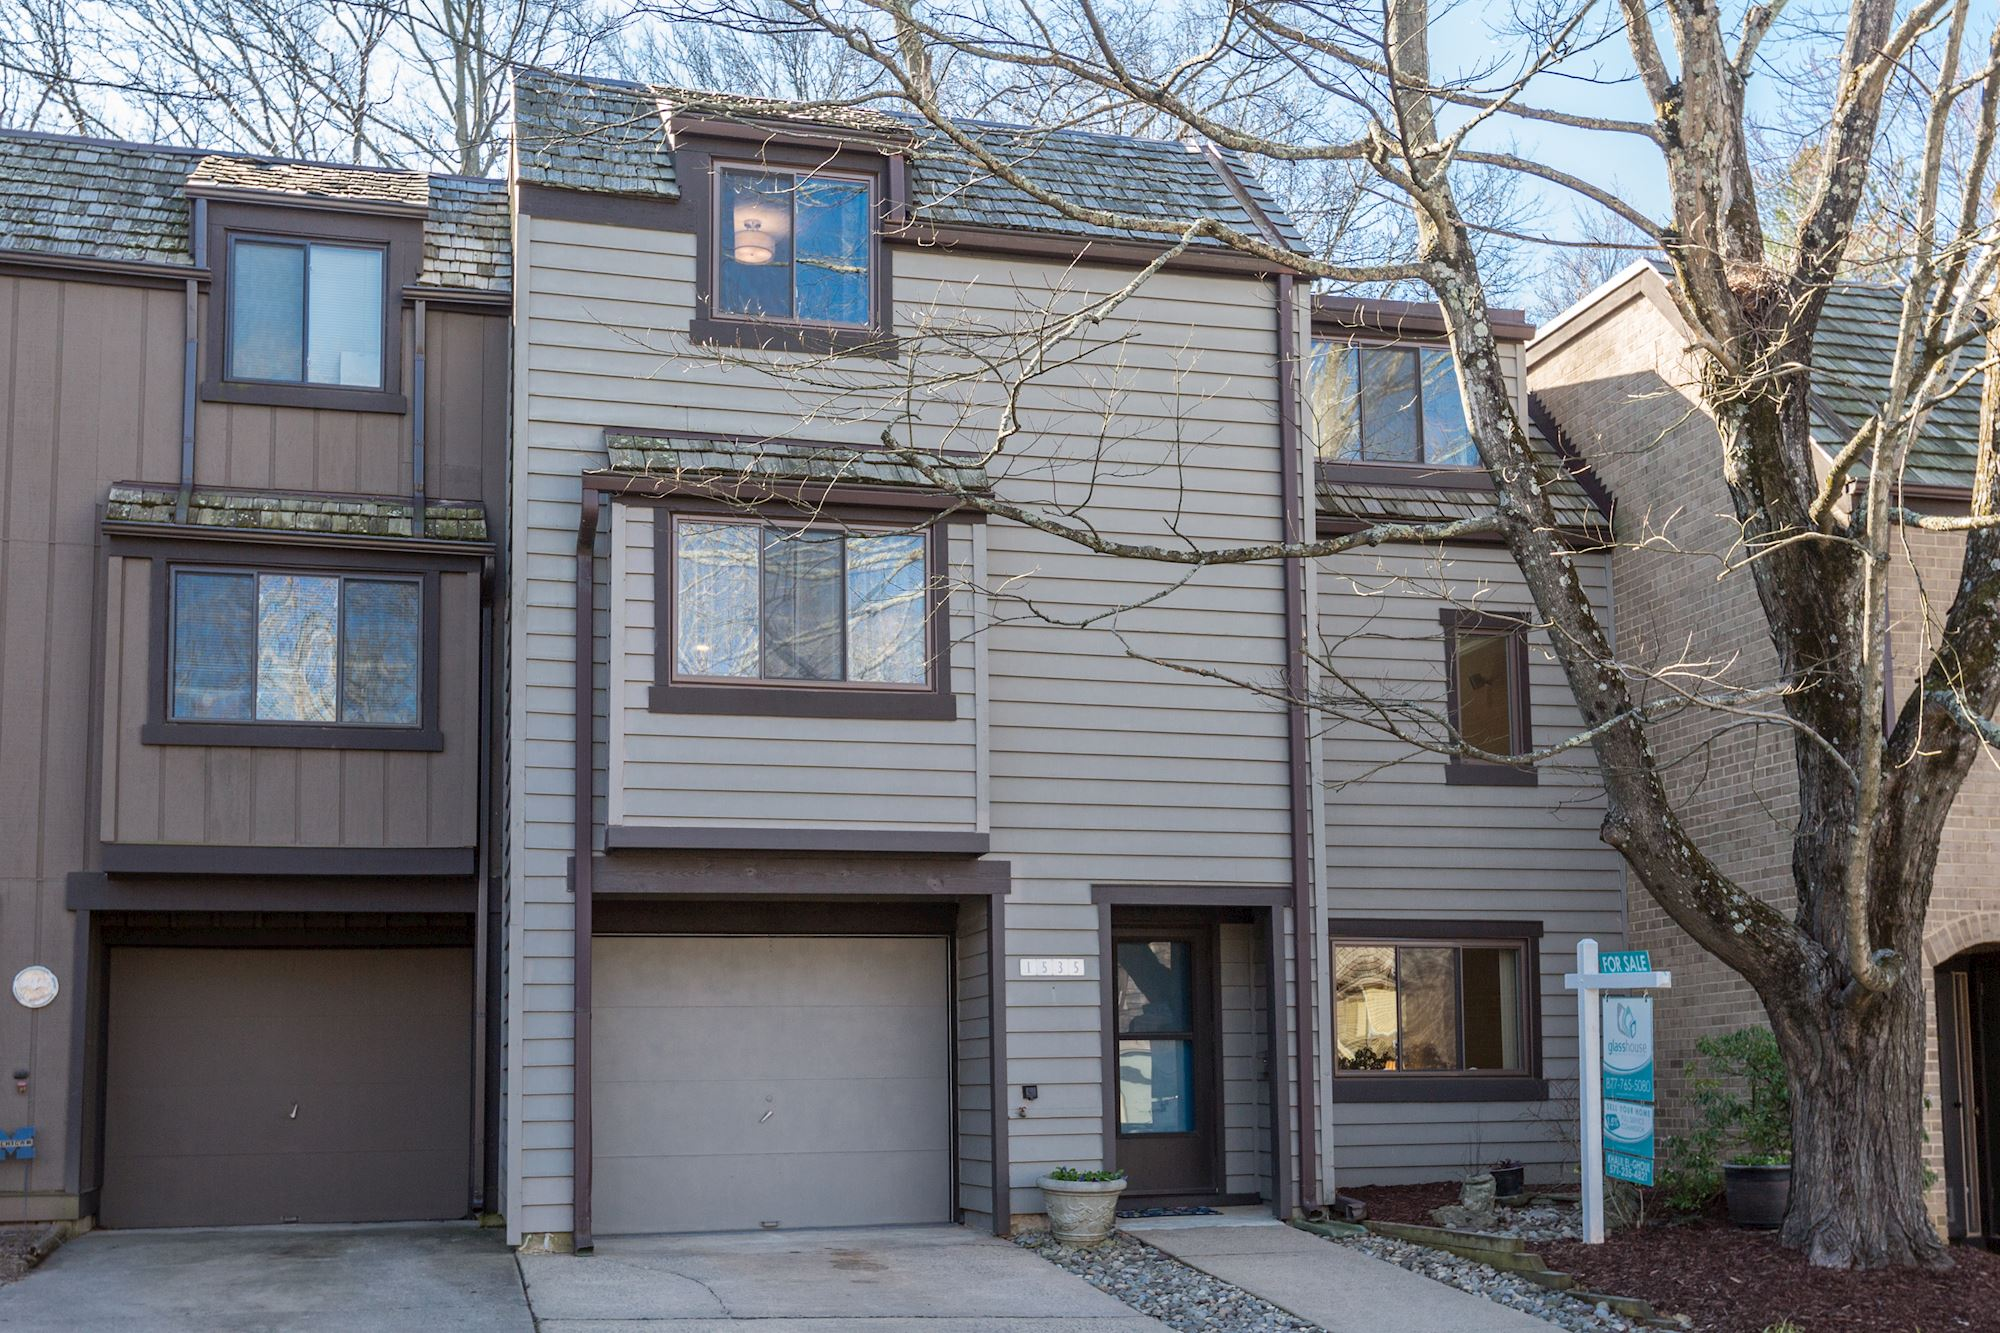 SOLD: 4 BD Renovated Townhome in Reston